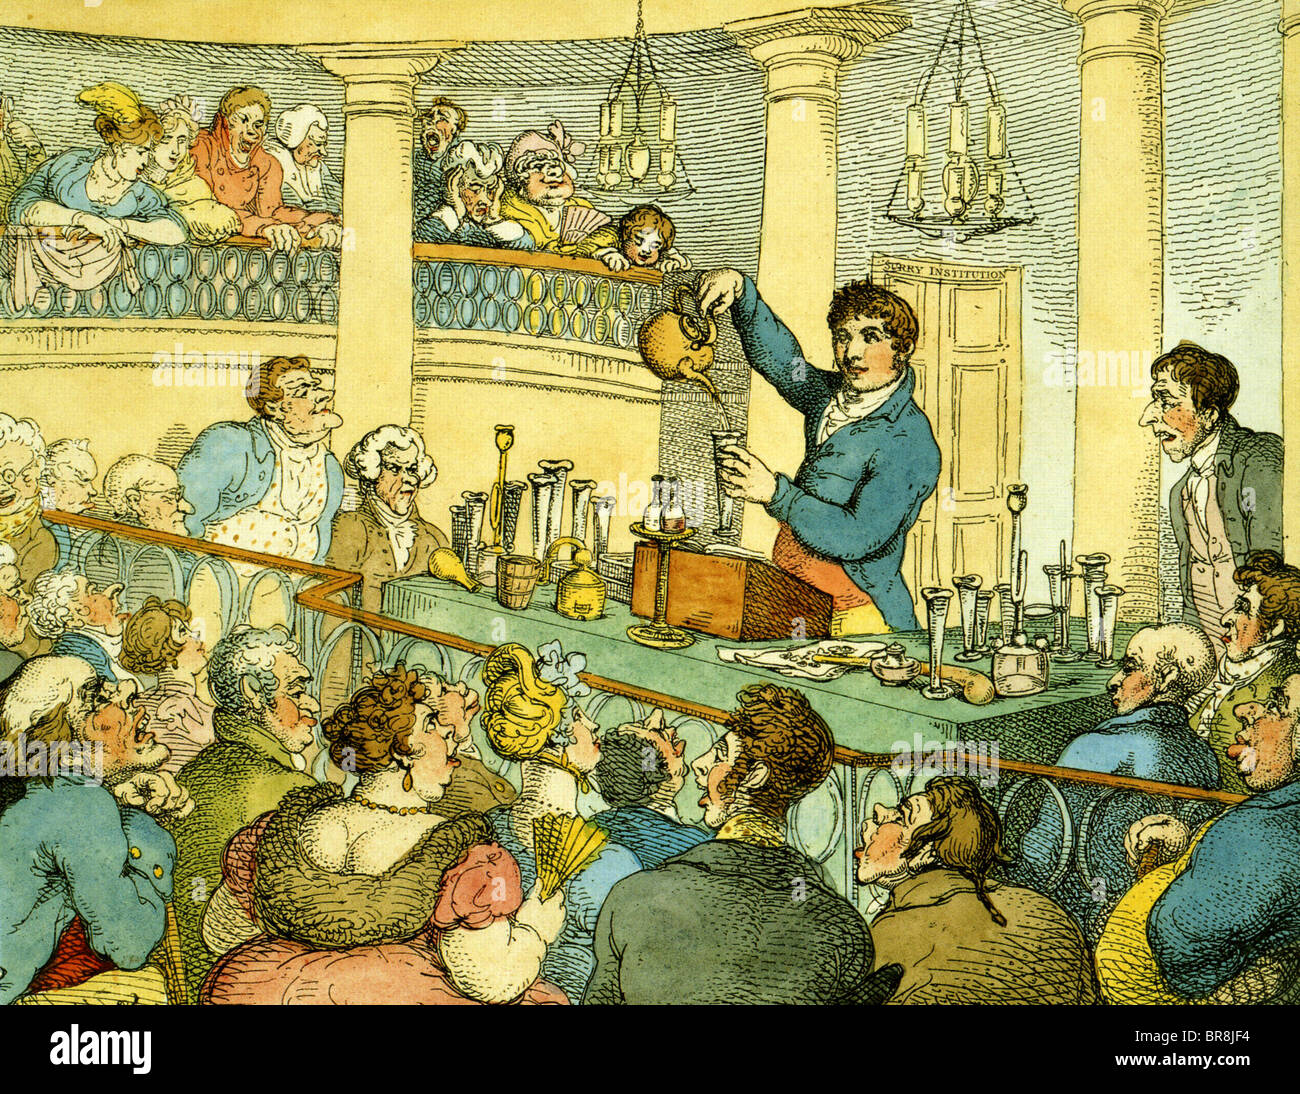 HUMPHREY DAVEY 91778-1829)  UK scientist giving one of his very popular and dramatic lectures at the Royal Institution - Stock Image